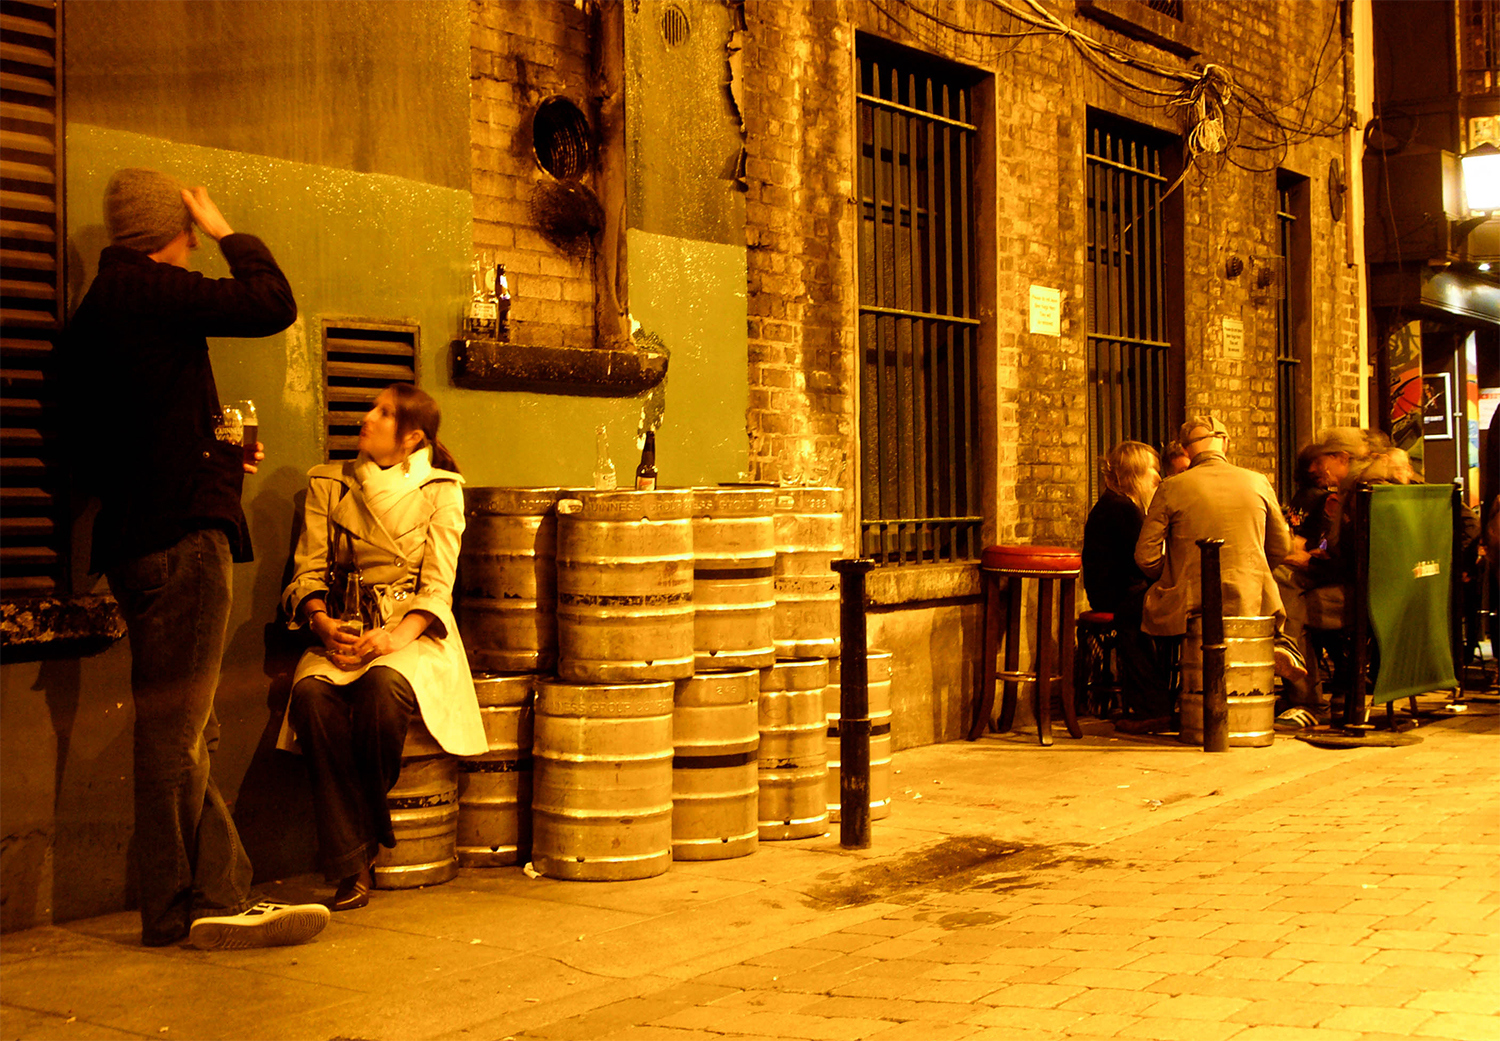 <p>Empty kegs provide impromptu seating as the night wears on in Dublin's Dame Lane.</p>